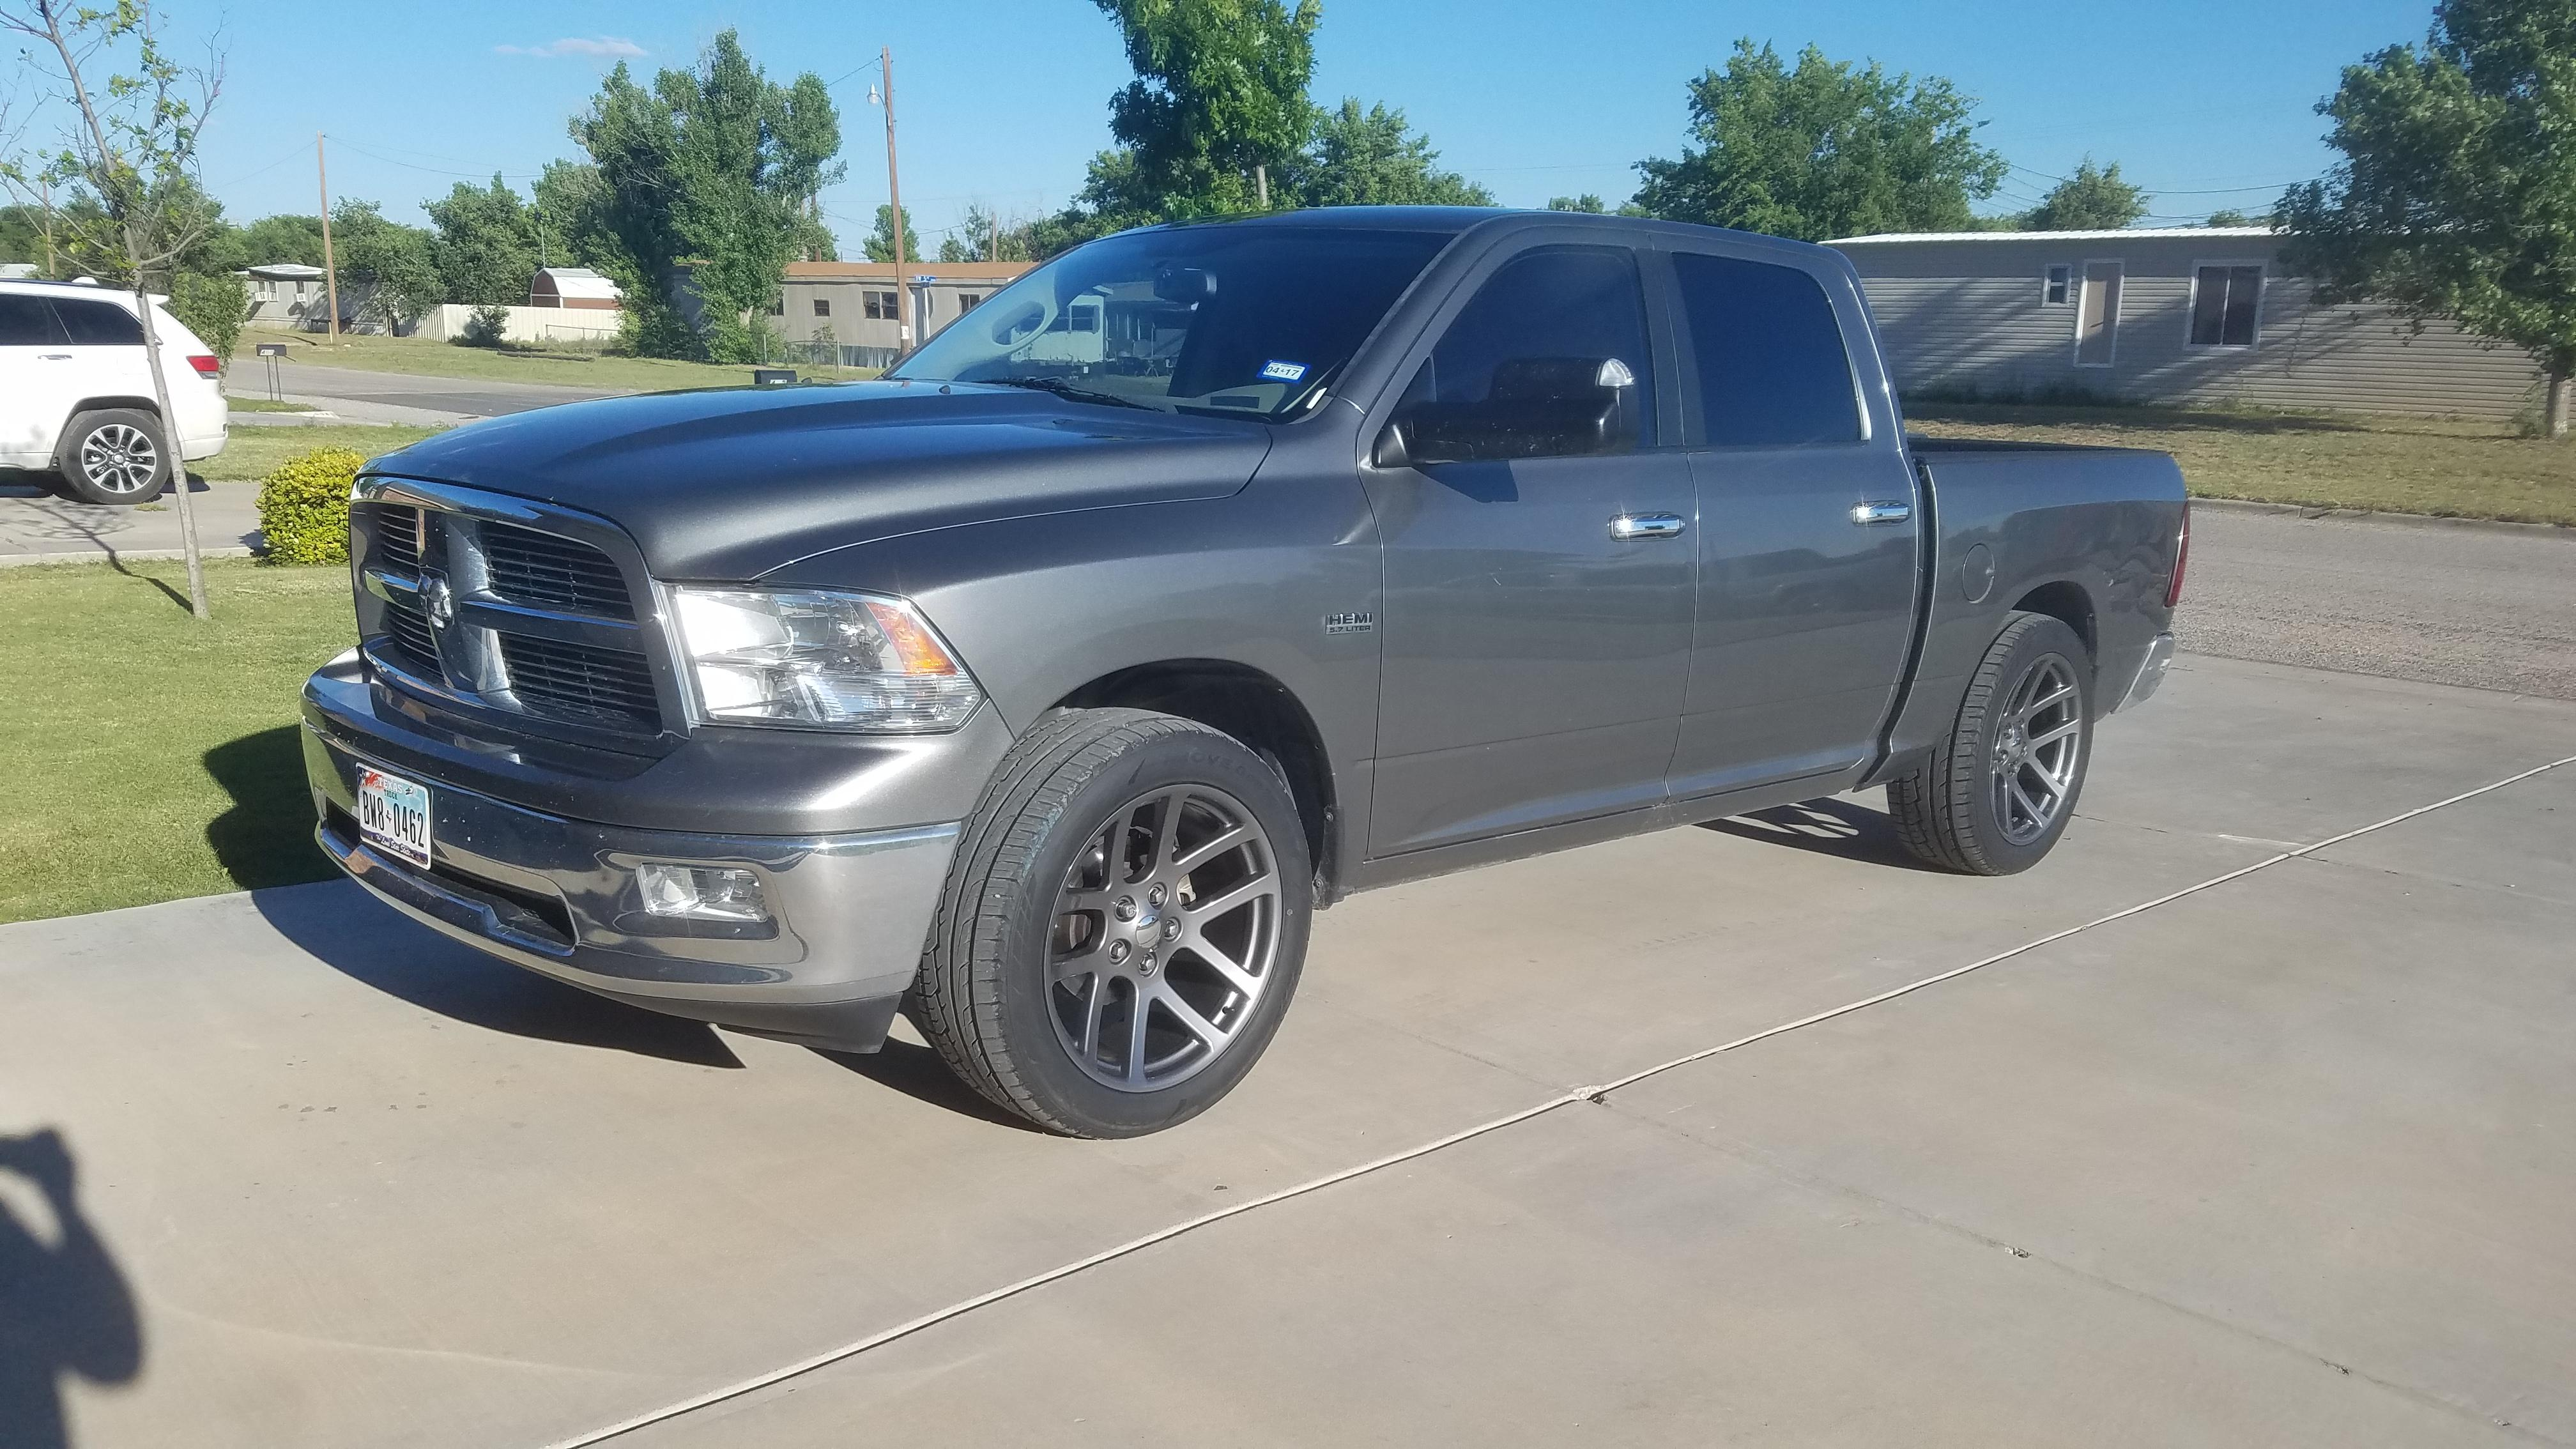 r dodge truck showthread in forums ram t work rt progress my dodgetalk car for and sale